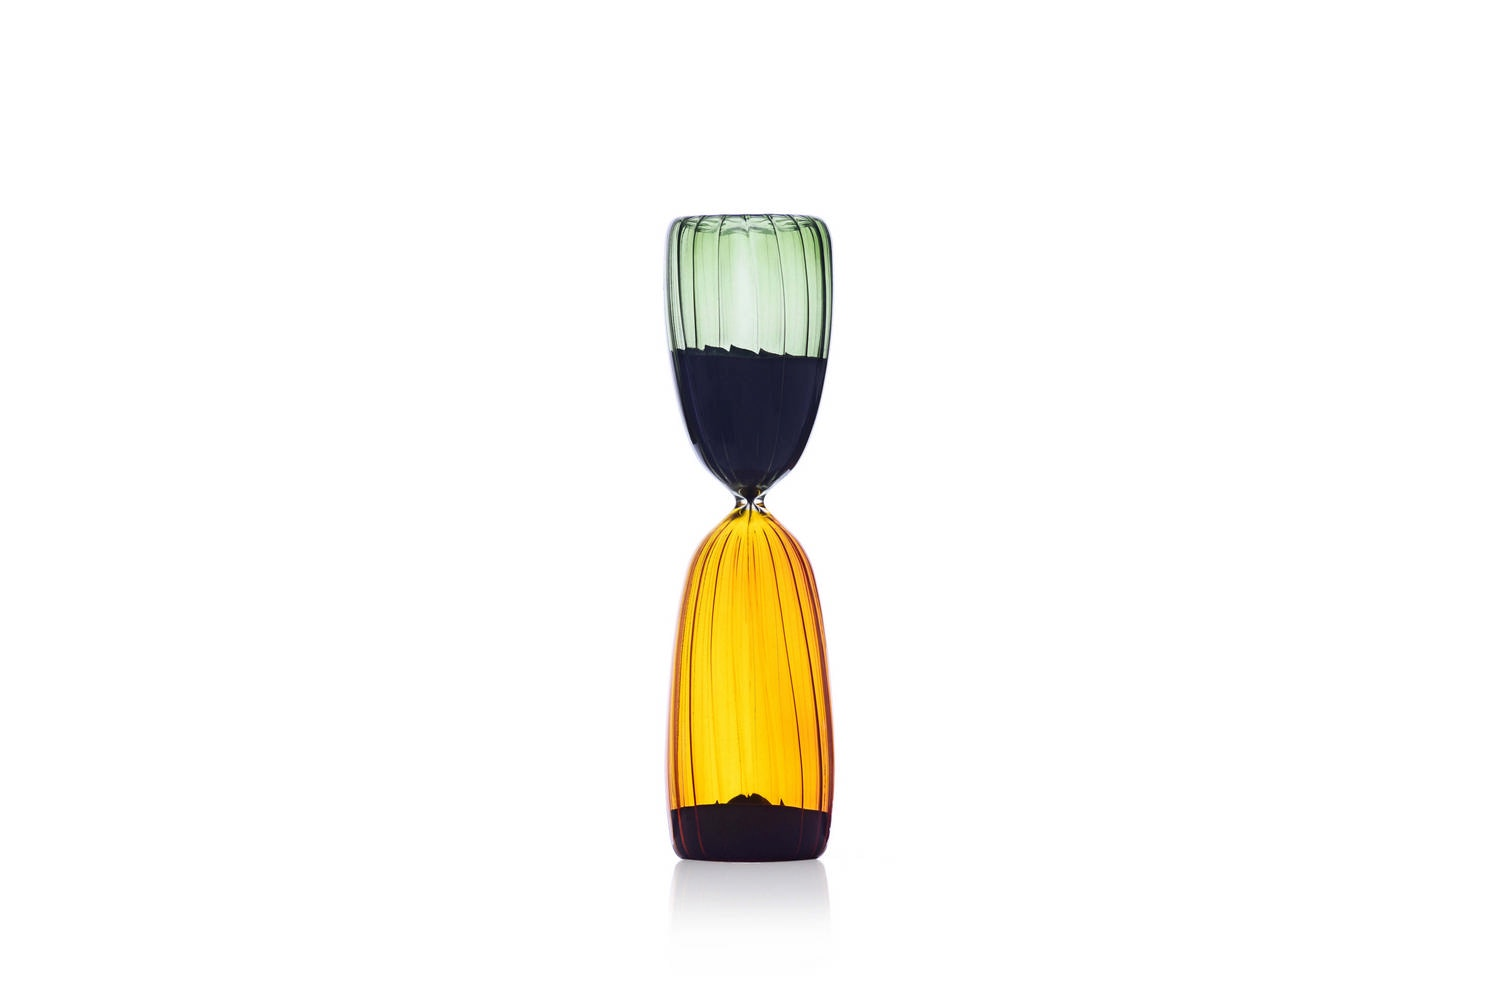 Times Hourglass 15 Minutes - Green/Amber by Denis Guidone for Ichendorf Milano